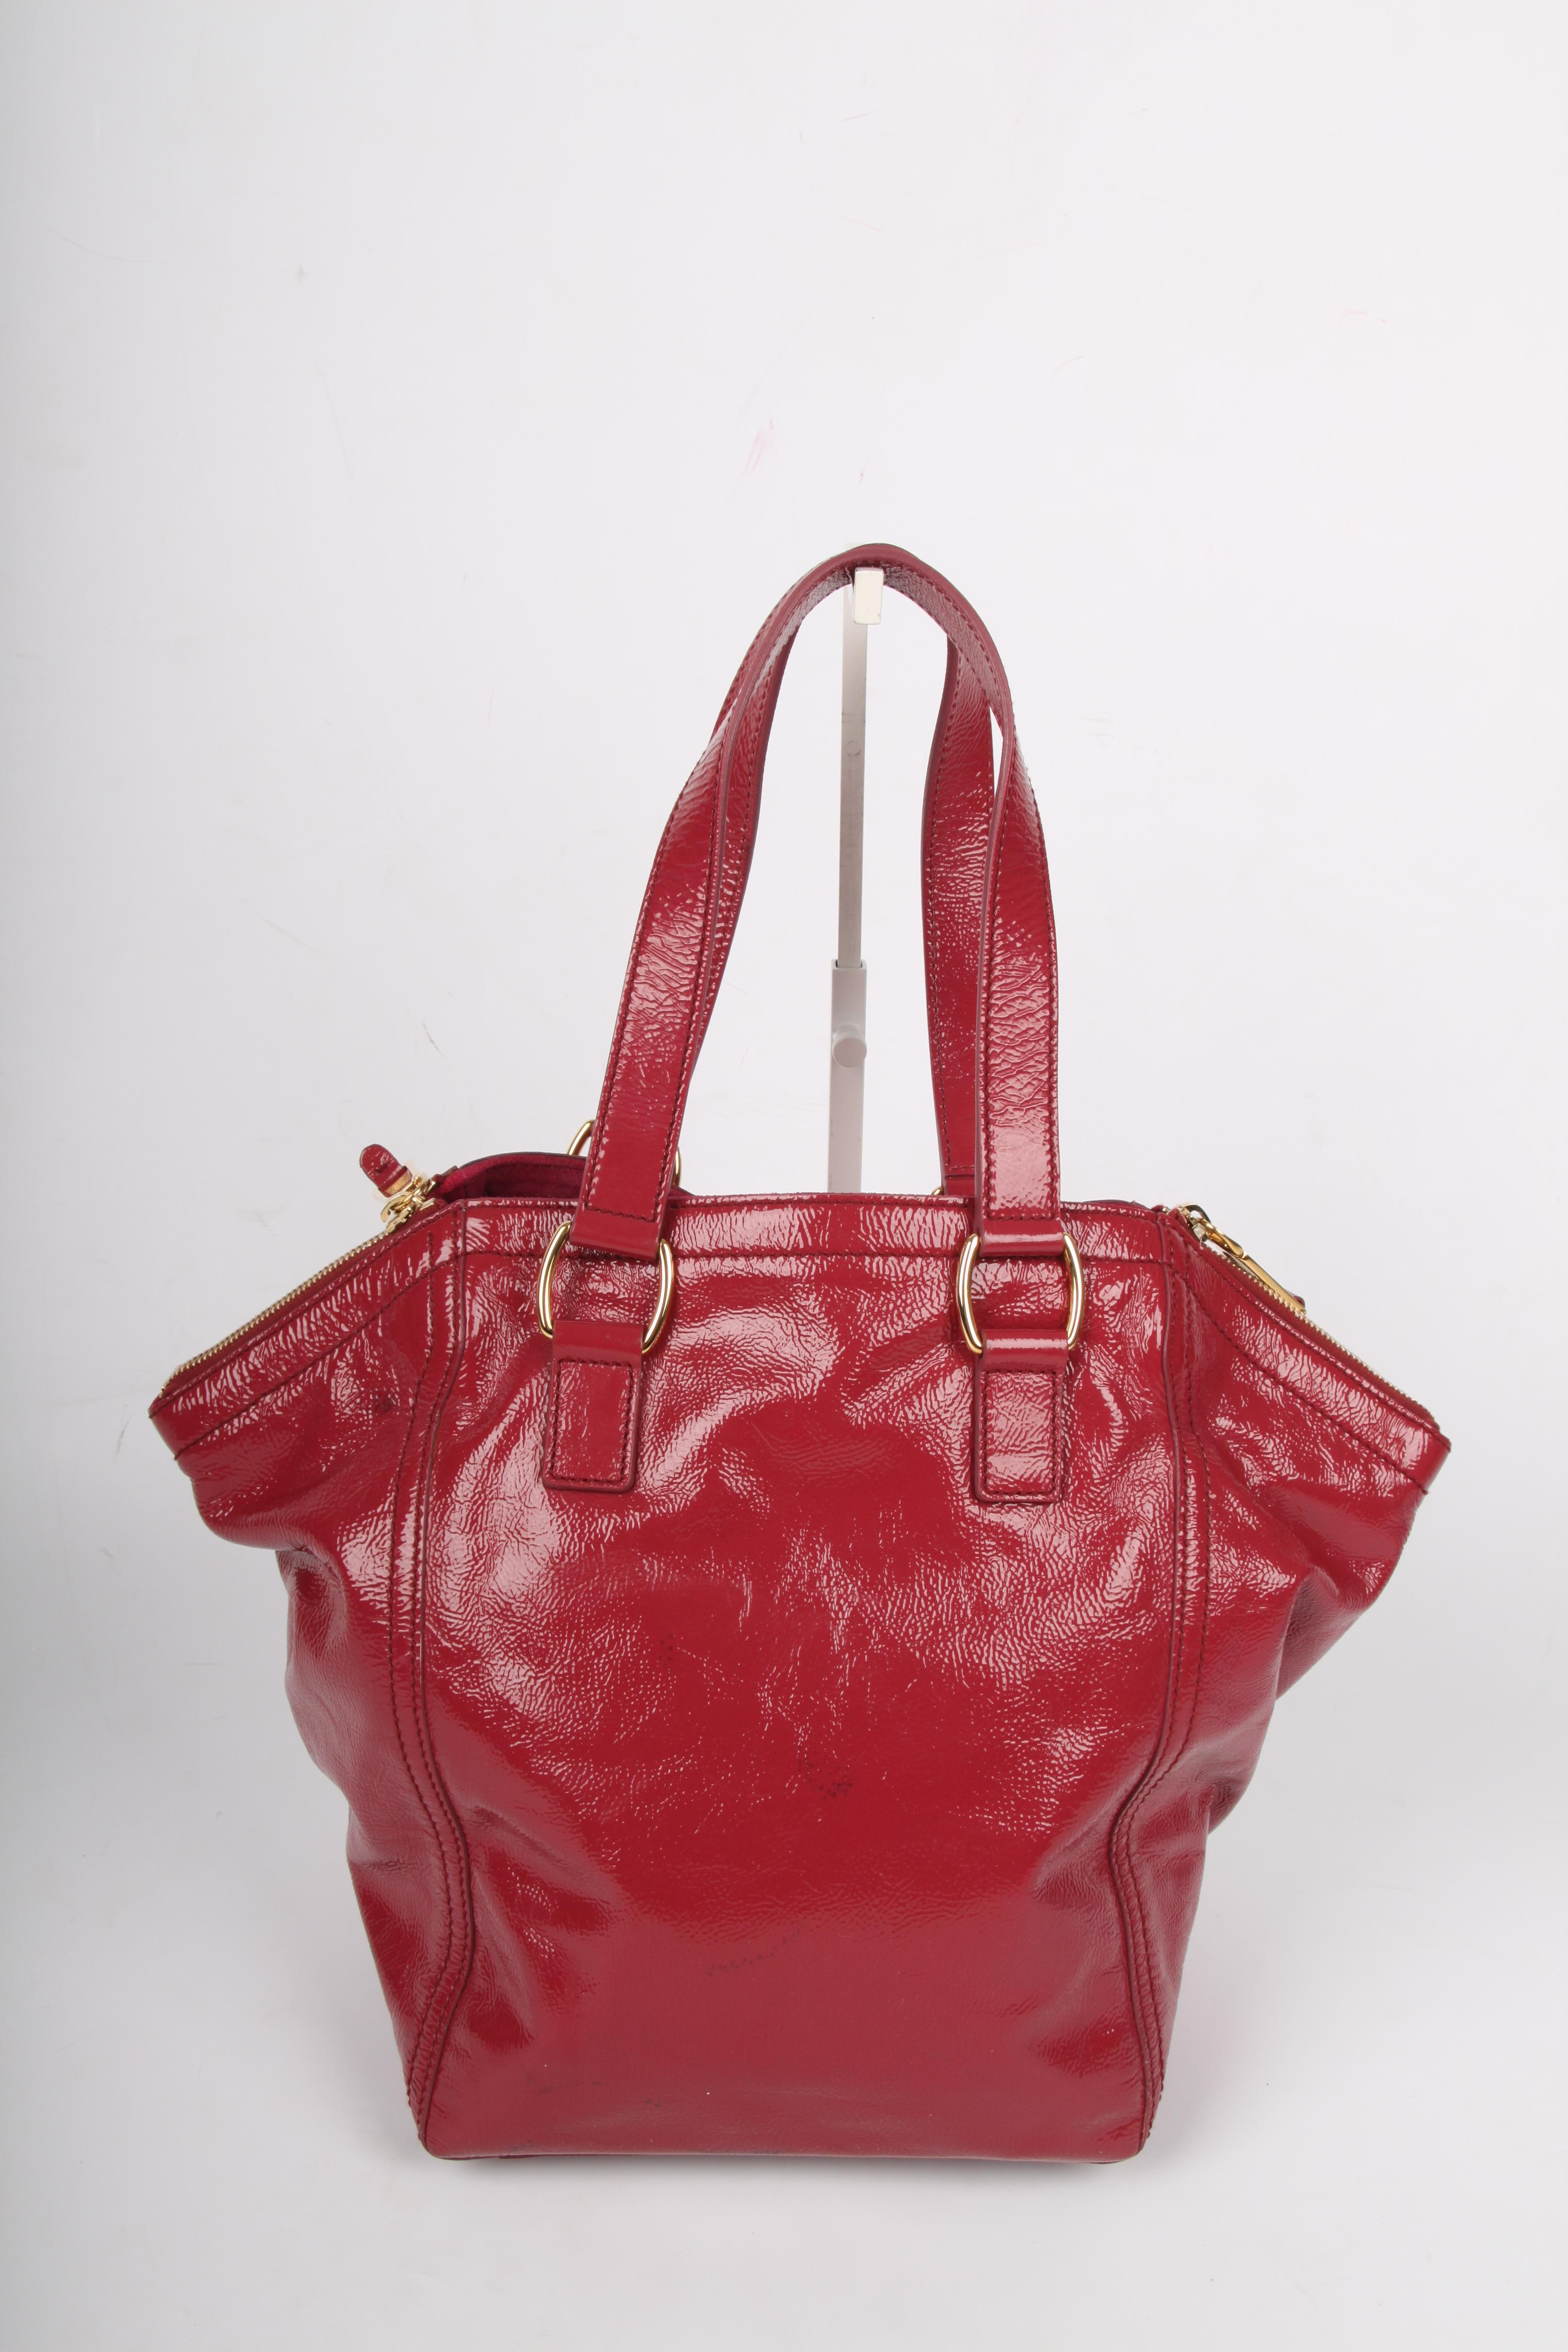 5688073a87f Yves Saint Laurent Downtown Bag Patent Leather - pink at 1stdibs